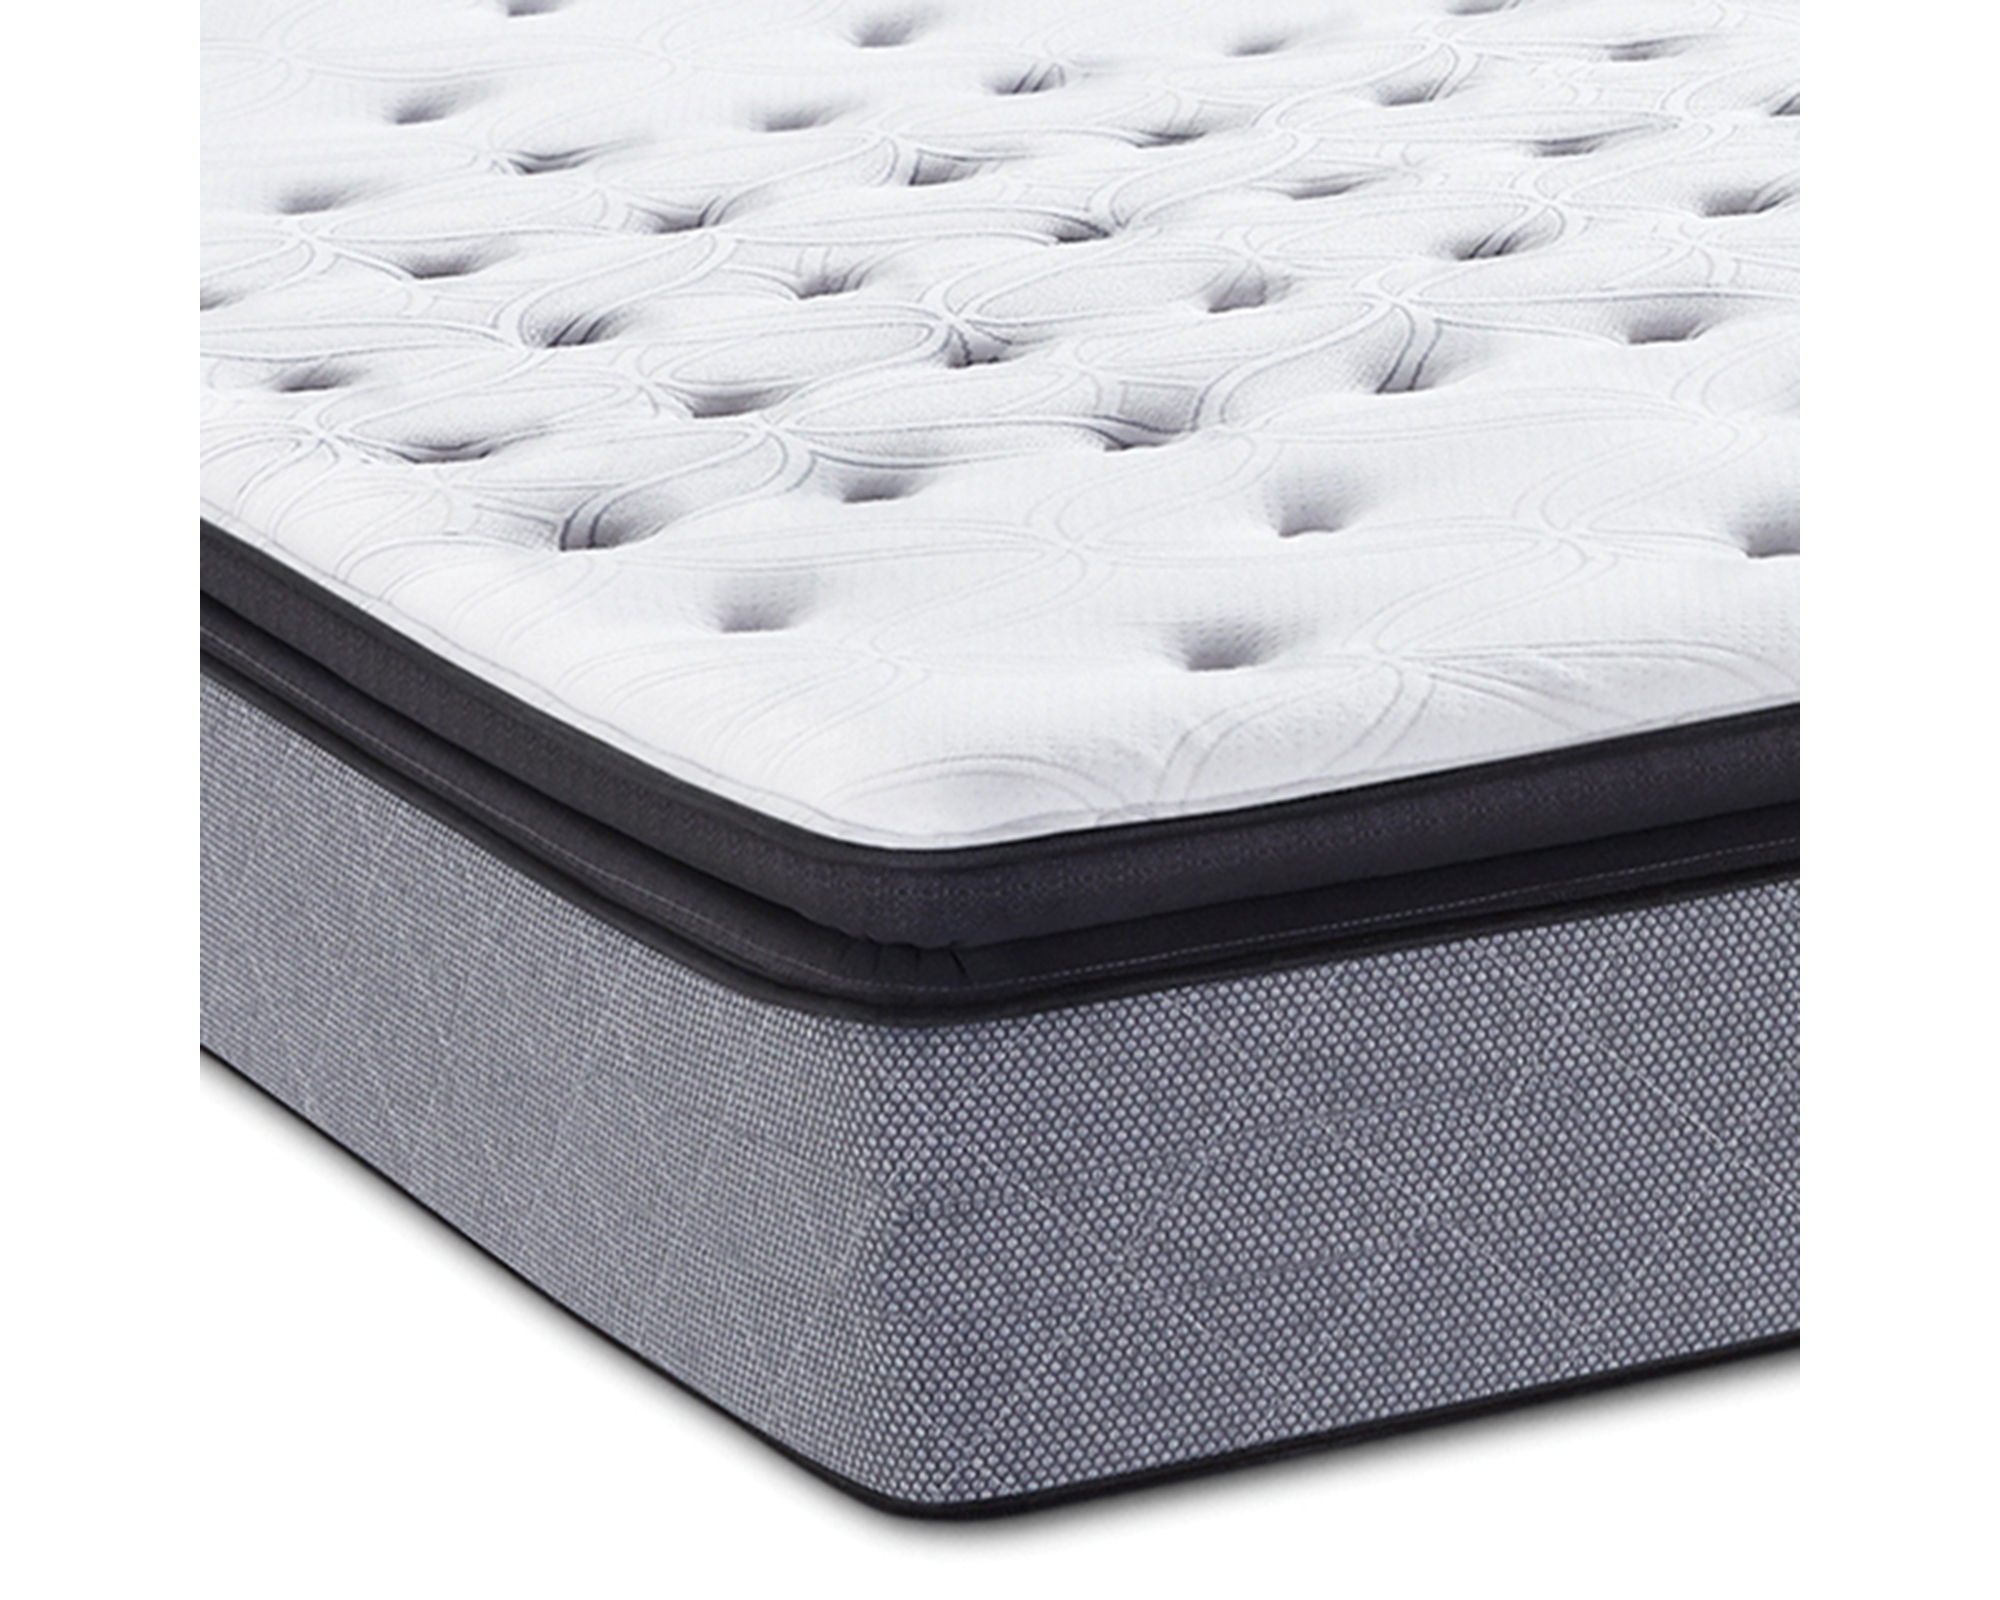 Sealy Posturepedic Iguaza Falls Cushion Firm Euro Pillow-Top - Mattress Only